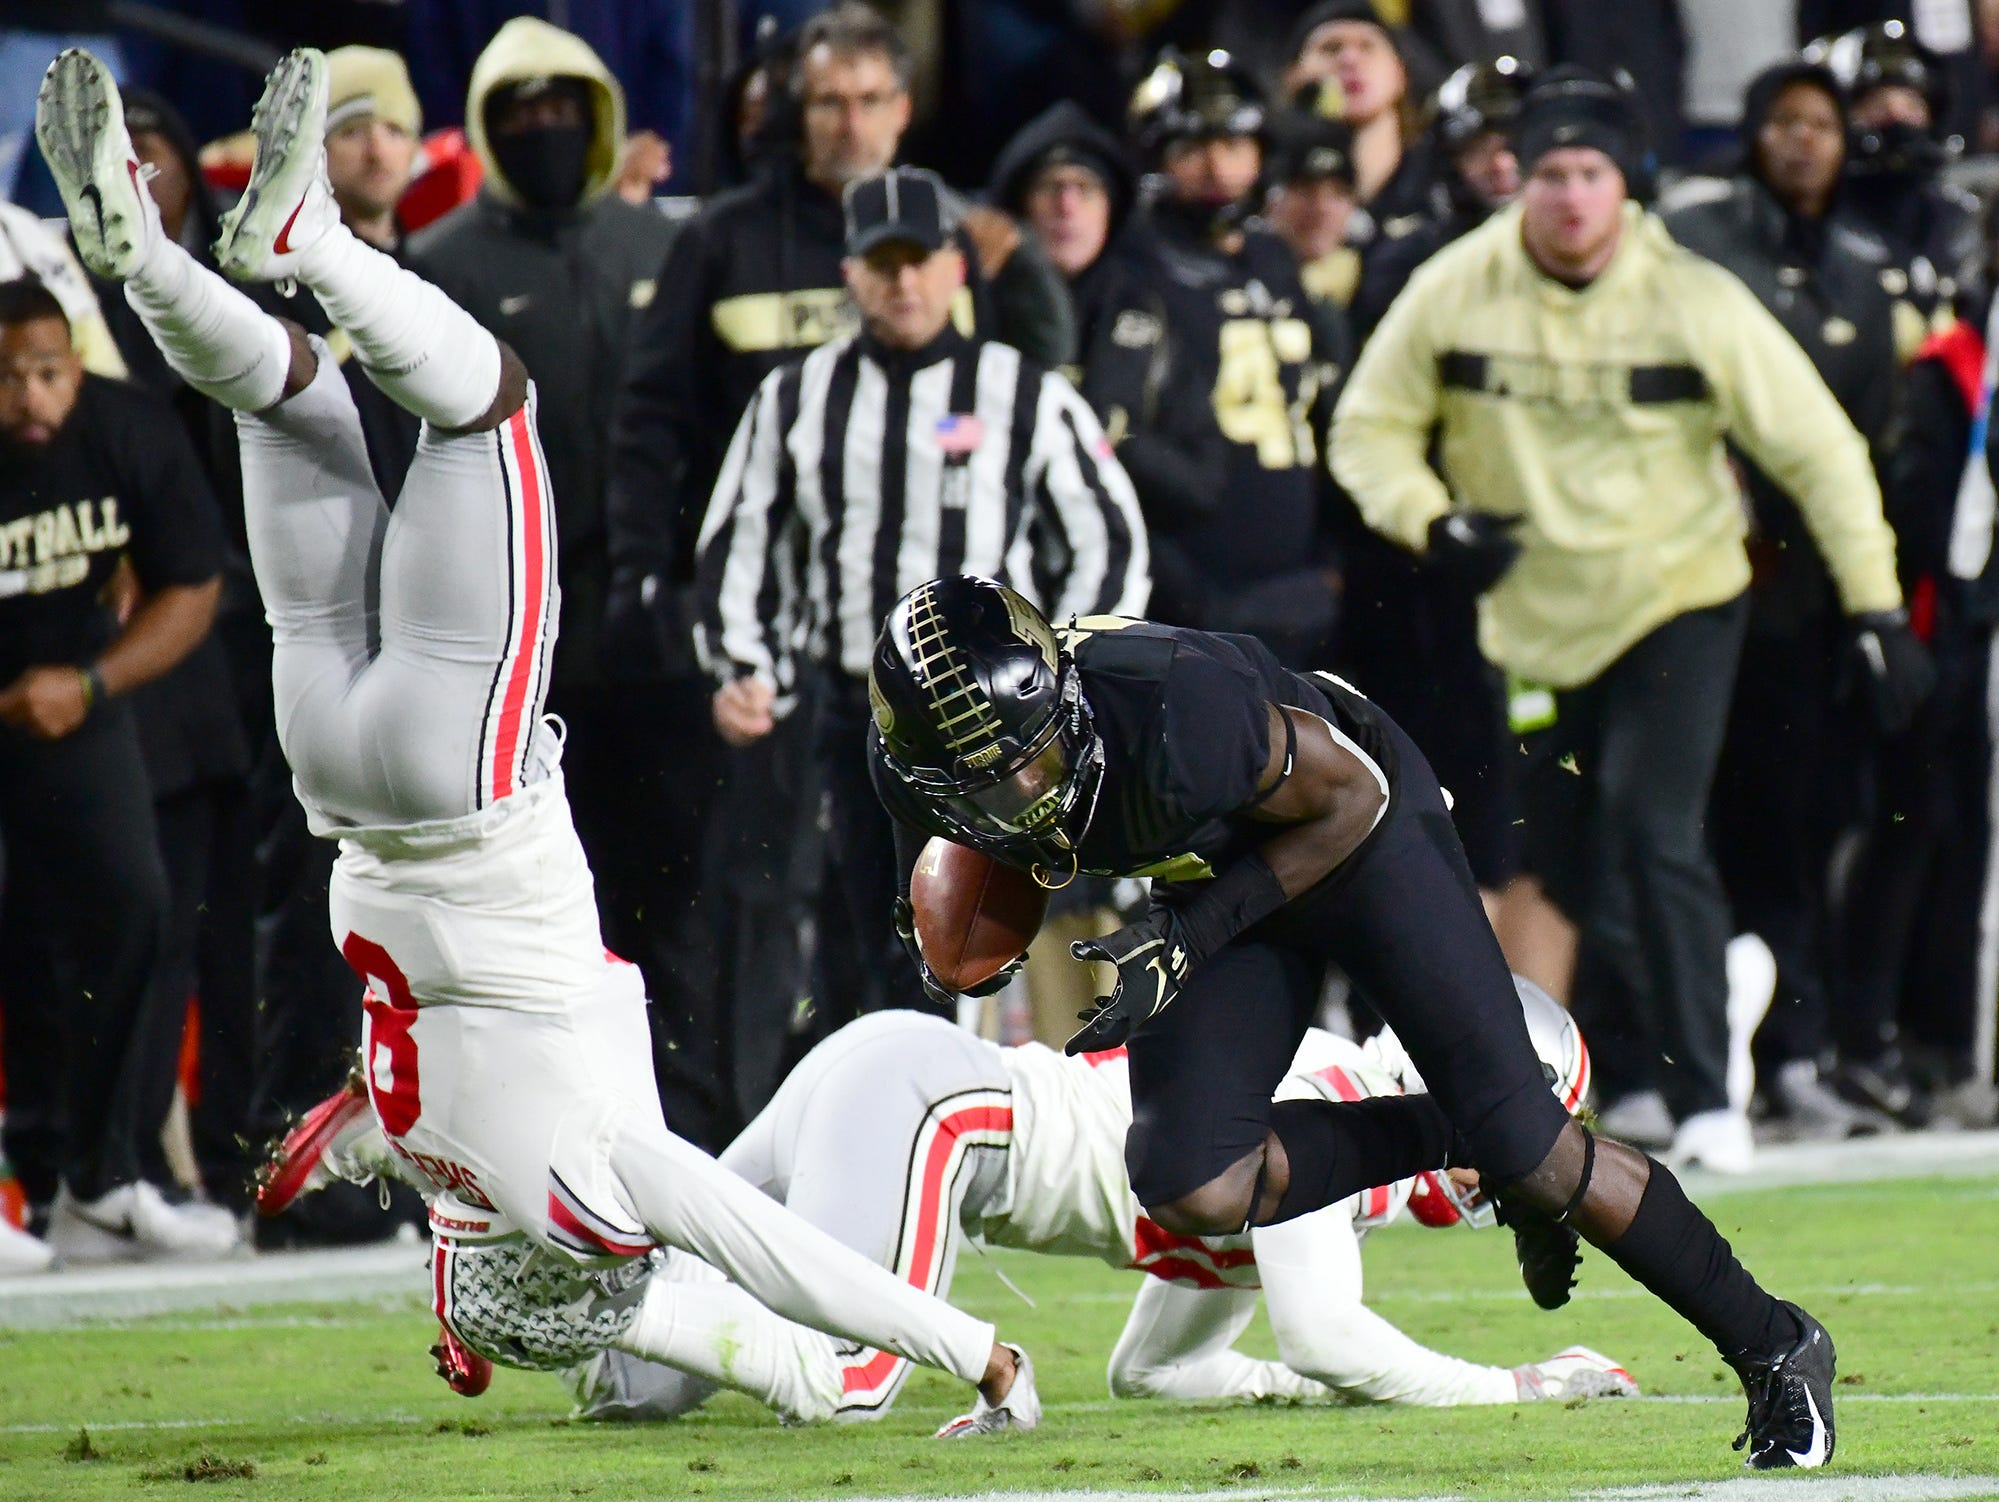 Purdue's Isaac Zico as Purdue upsets Ohio State in West Lafayette on Saturday October 20, 2018.